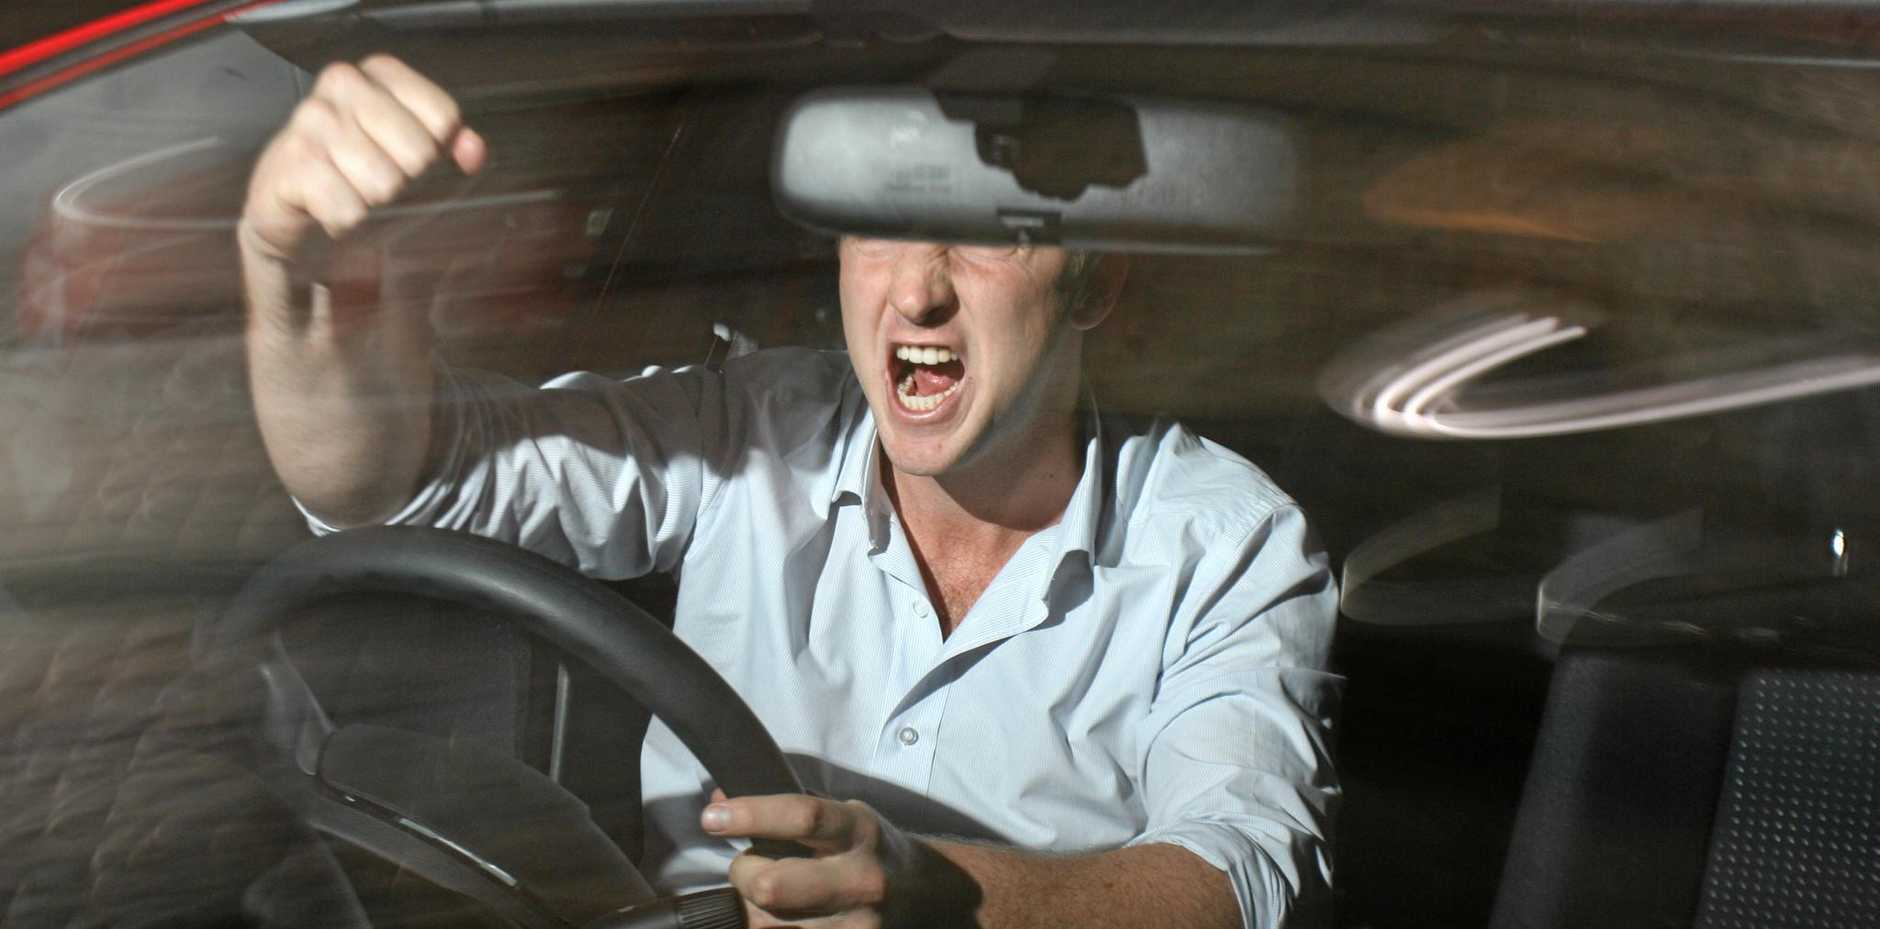 A Sunshine Coast mother has spoken out about a road rage attack while her newborn son was in the car.